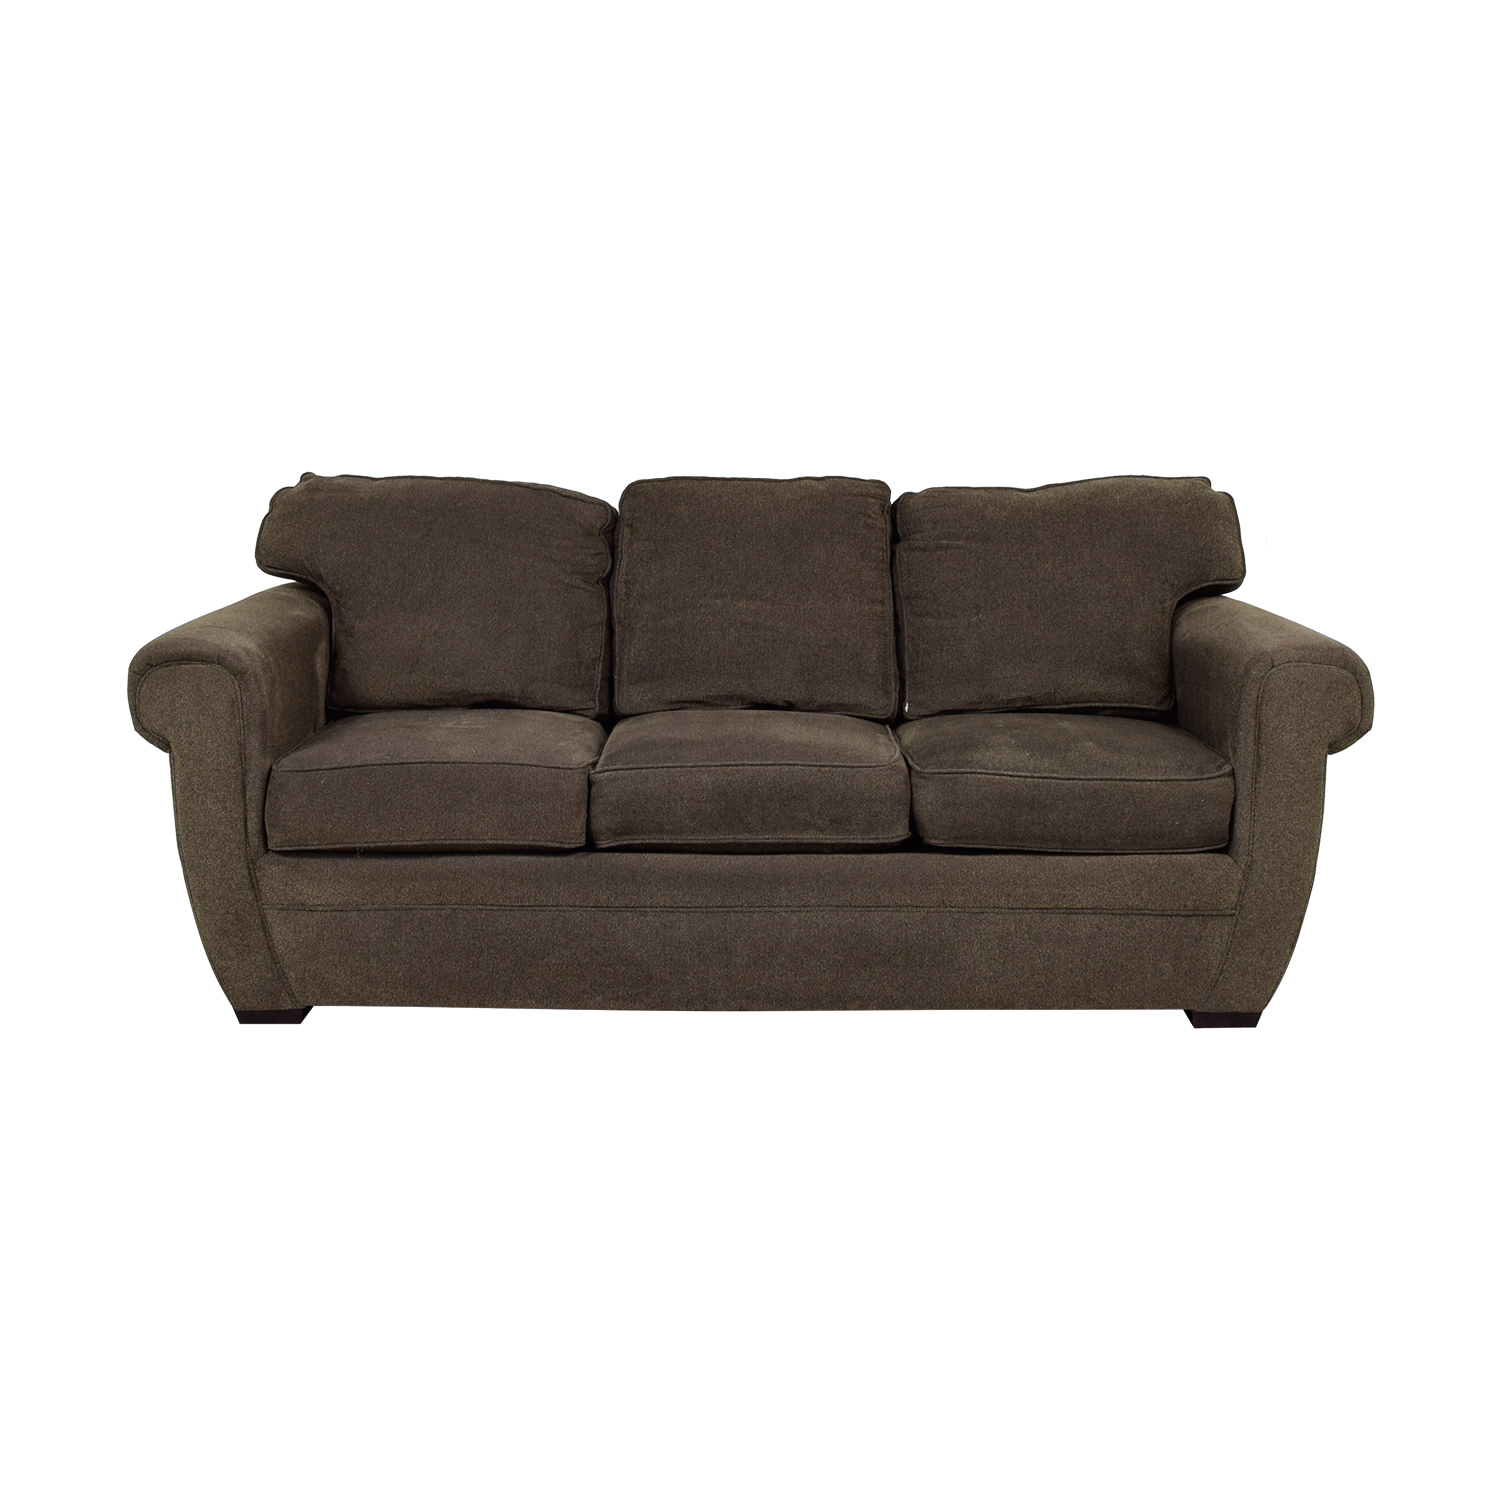 shop Broyhill Broyhill Brown Sofa online